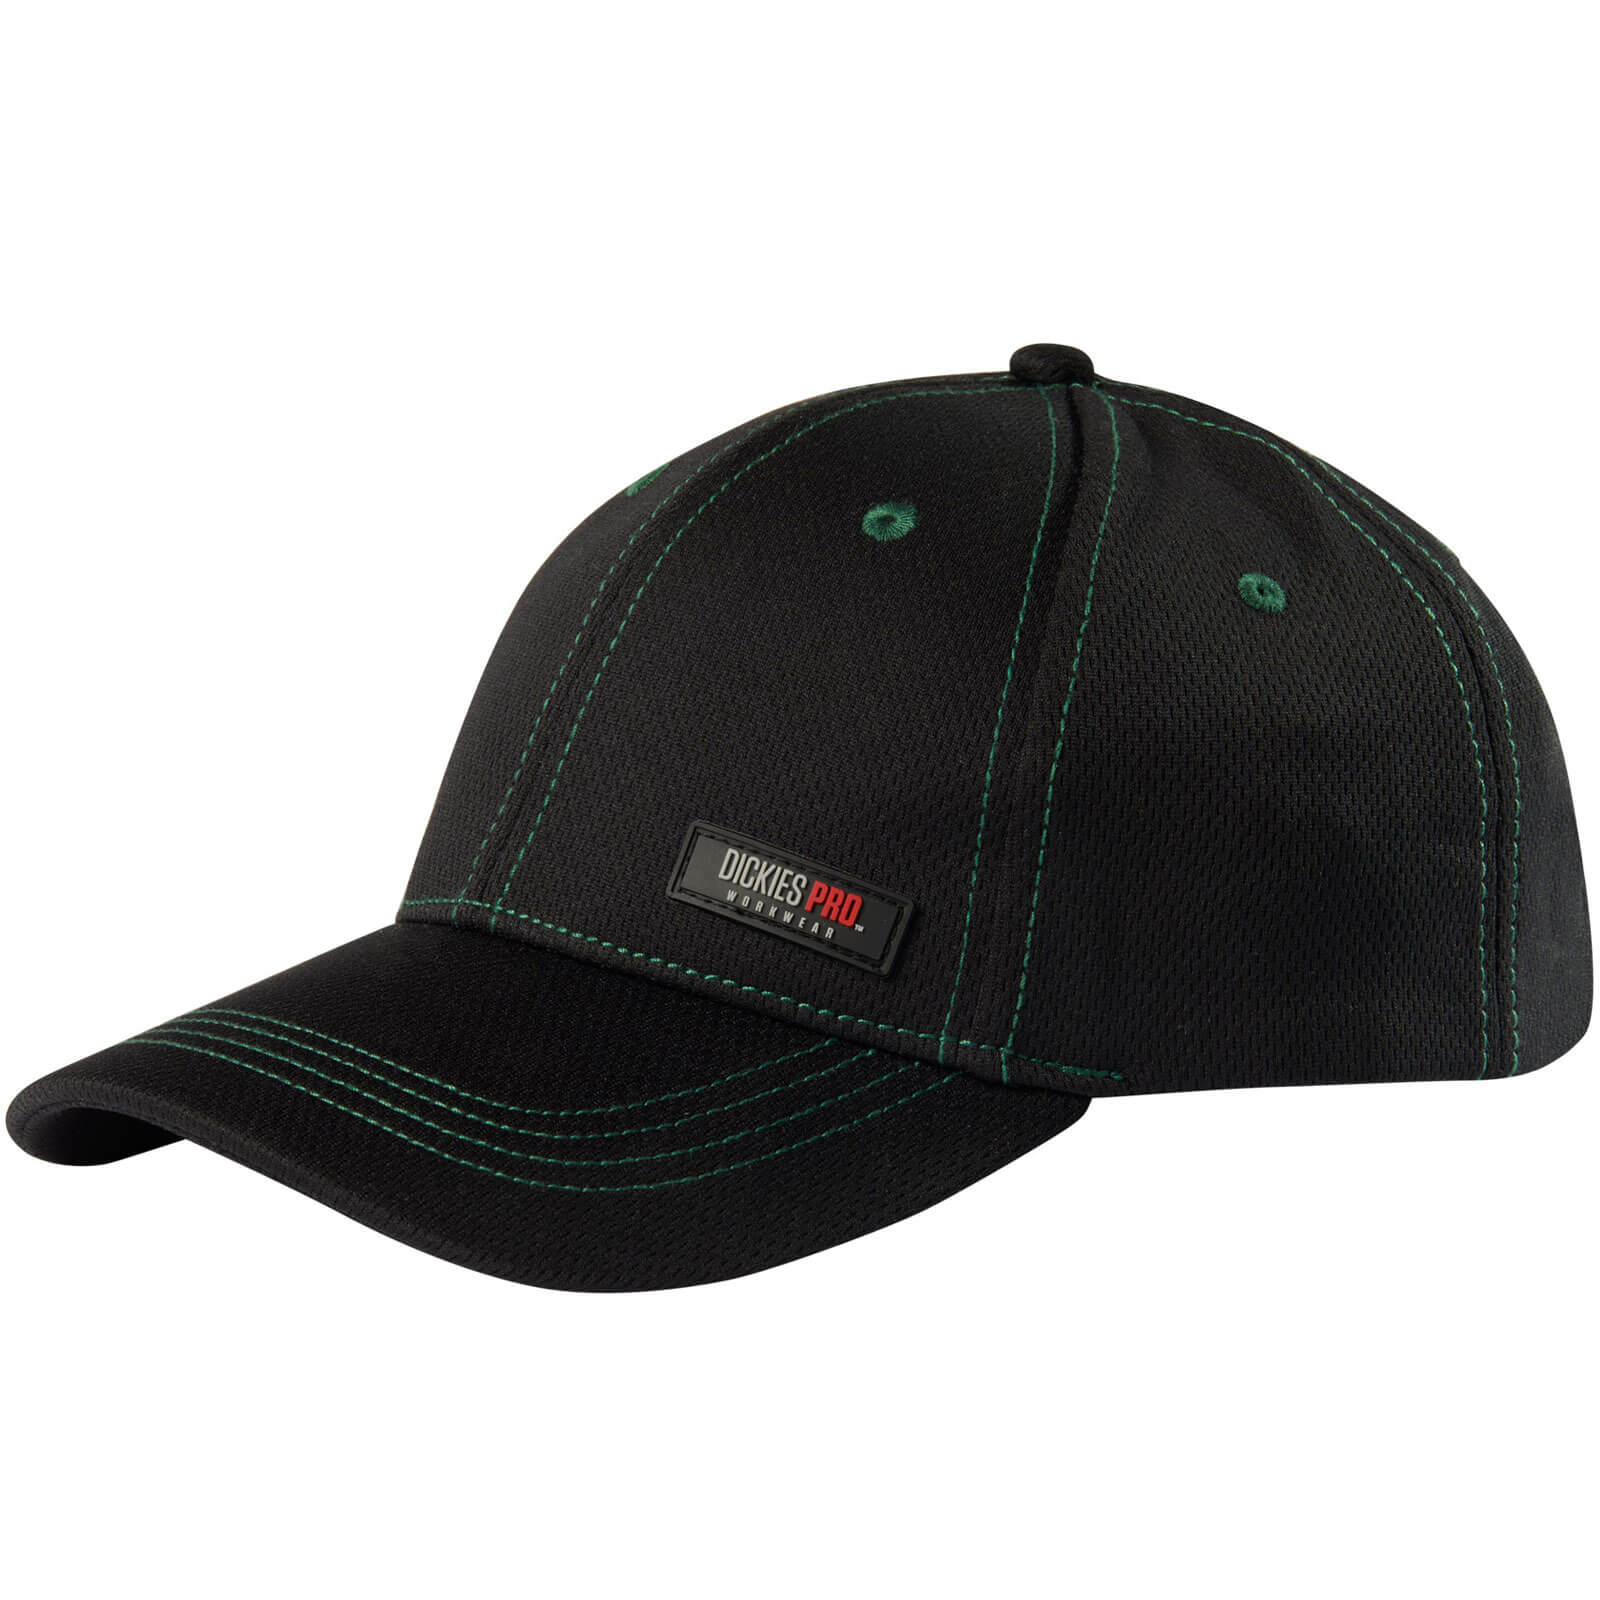 Image of Dickies Pro Cap Green / Black One Size